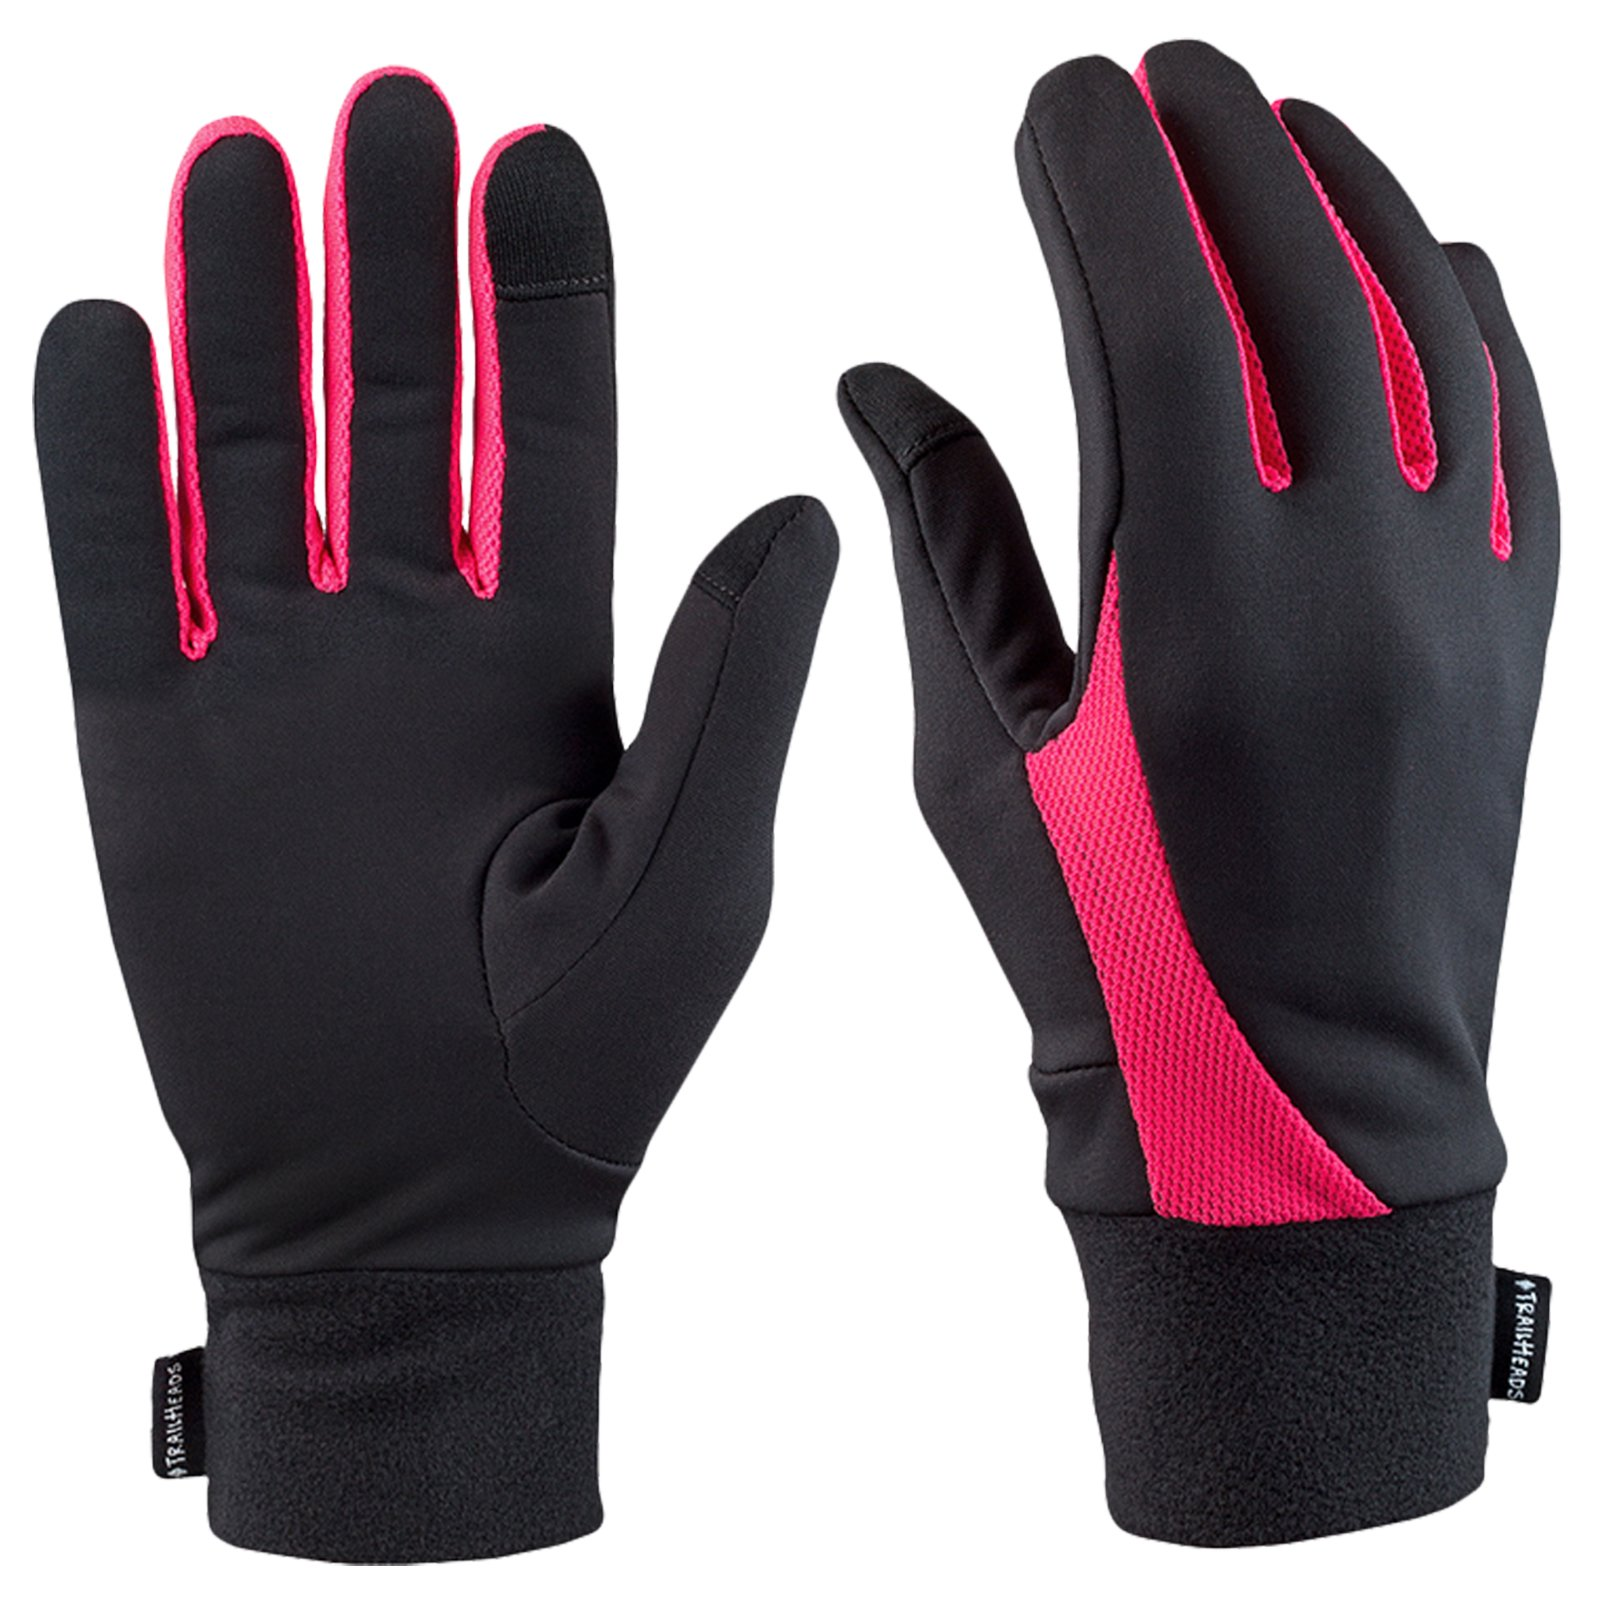 TrailHeads Running Gloves for Women | Lightweight Gloves with Touchscreen Fingers -Black/Bright Coral (Small)